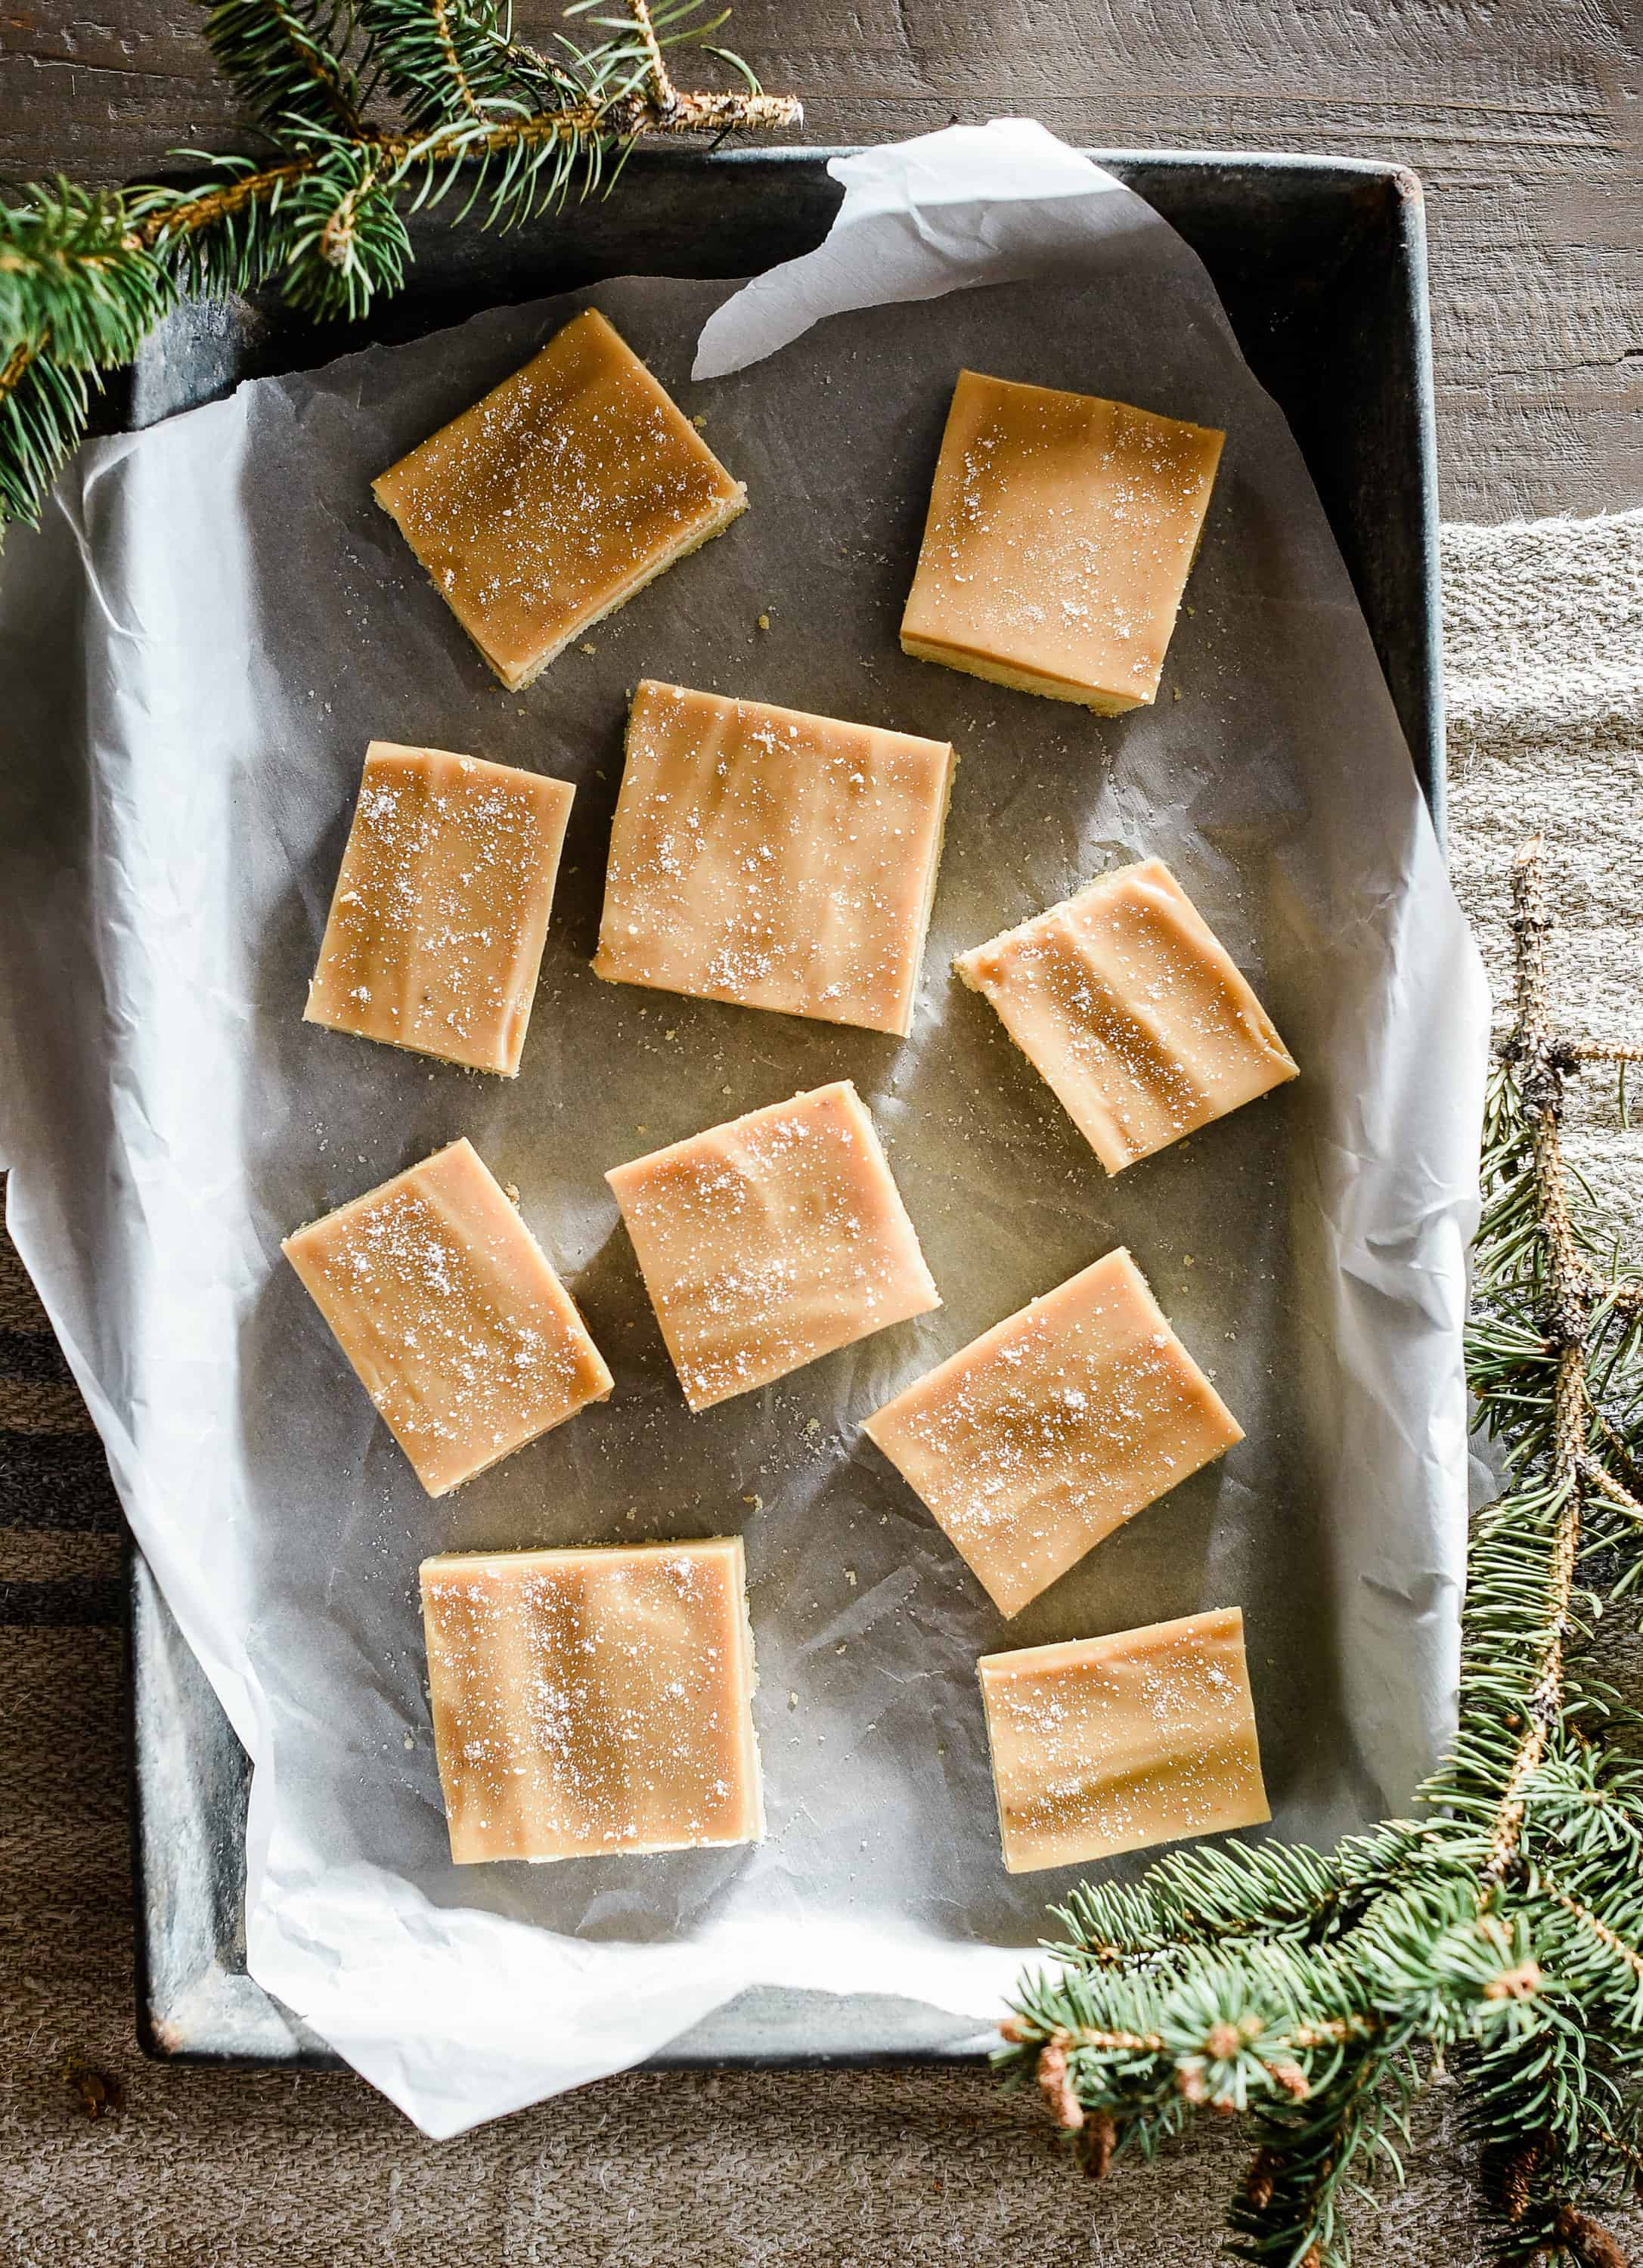 Best Christmas Desserts: Salted Caramel Shortbread bars